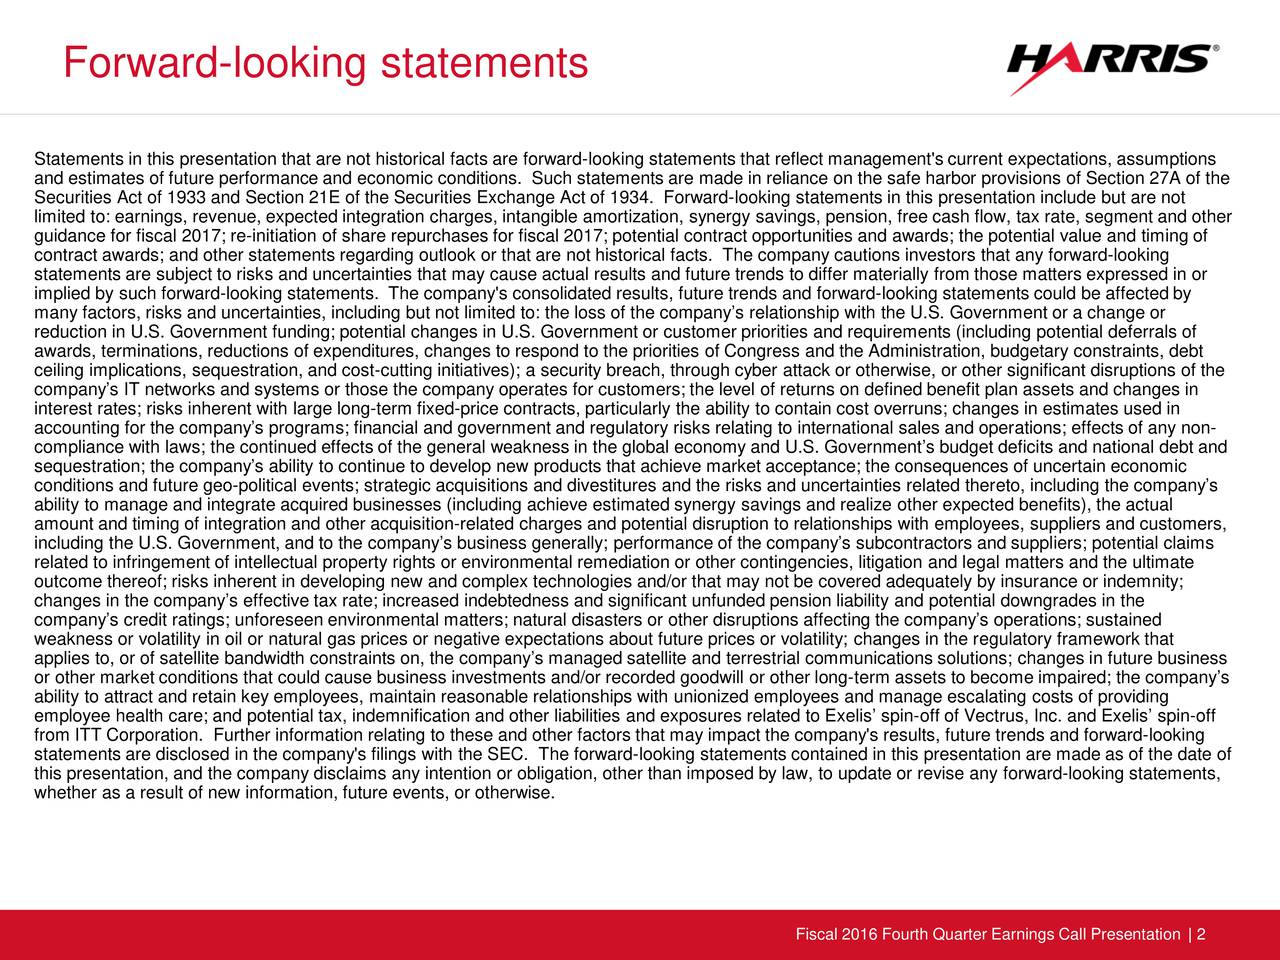 Statements in this presentation that are not historical facts are forward-looking statements that reflect management's current expectations, assumptions and estimates of future performance and economic conditions. Such statements are made in reliance on the safe harbor provisions of Section 27A of the Securities Act of 1933 and Section 21E of the Securities Exchange Act of 1934. Forward-looking statements in this presentation include but are not limited to: earnings, revenue, expected integration charges, intangible amortization, synergy savings, pension, free cash flow,tax rate, segment and other guidance for fiscal 2017; re-initiation of share repurchases for fiscal 2017; potential contract opportunities and awards; the potential value and timing of contract awards; and other statements regarding outlook or that are not historical facts. The company cautions investors that a ny forward-looking statements are subject to risks and uncertainties that may cause actual results and future trends to differ materially frotose matters expressed in or implied by such forward-looking statements. The company's consolidated results, future trends and forward-looking statements could be affected by many factors, risks and uncertainties, including but not limited to: the loss of the companys relationship with the U.S. ernment or a change or reduction in U.S. Government funding; potential changes in U.S. Government or customer priorities and requirements (includingpotential deferrals of awards, terminations, reductions of expenditures, changes to respond to the priorities of Congress and the Administration, budgetary constraints, debt ceiling implications, sequestration, and cost-cutting initiatives); a security breach, through cyber attack or otherwise, or other significant disruptions of the companys IT networks and systems or those the company operates for customers; the level of returns on defined benefit plan asse ts and changes in interest rates; risks inherent with large l